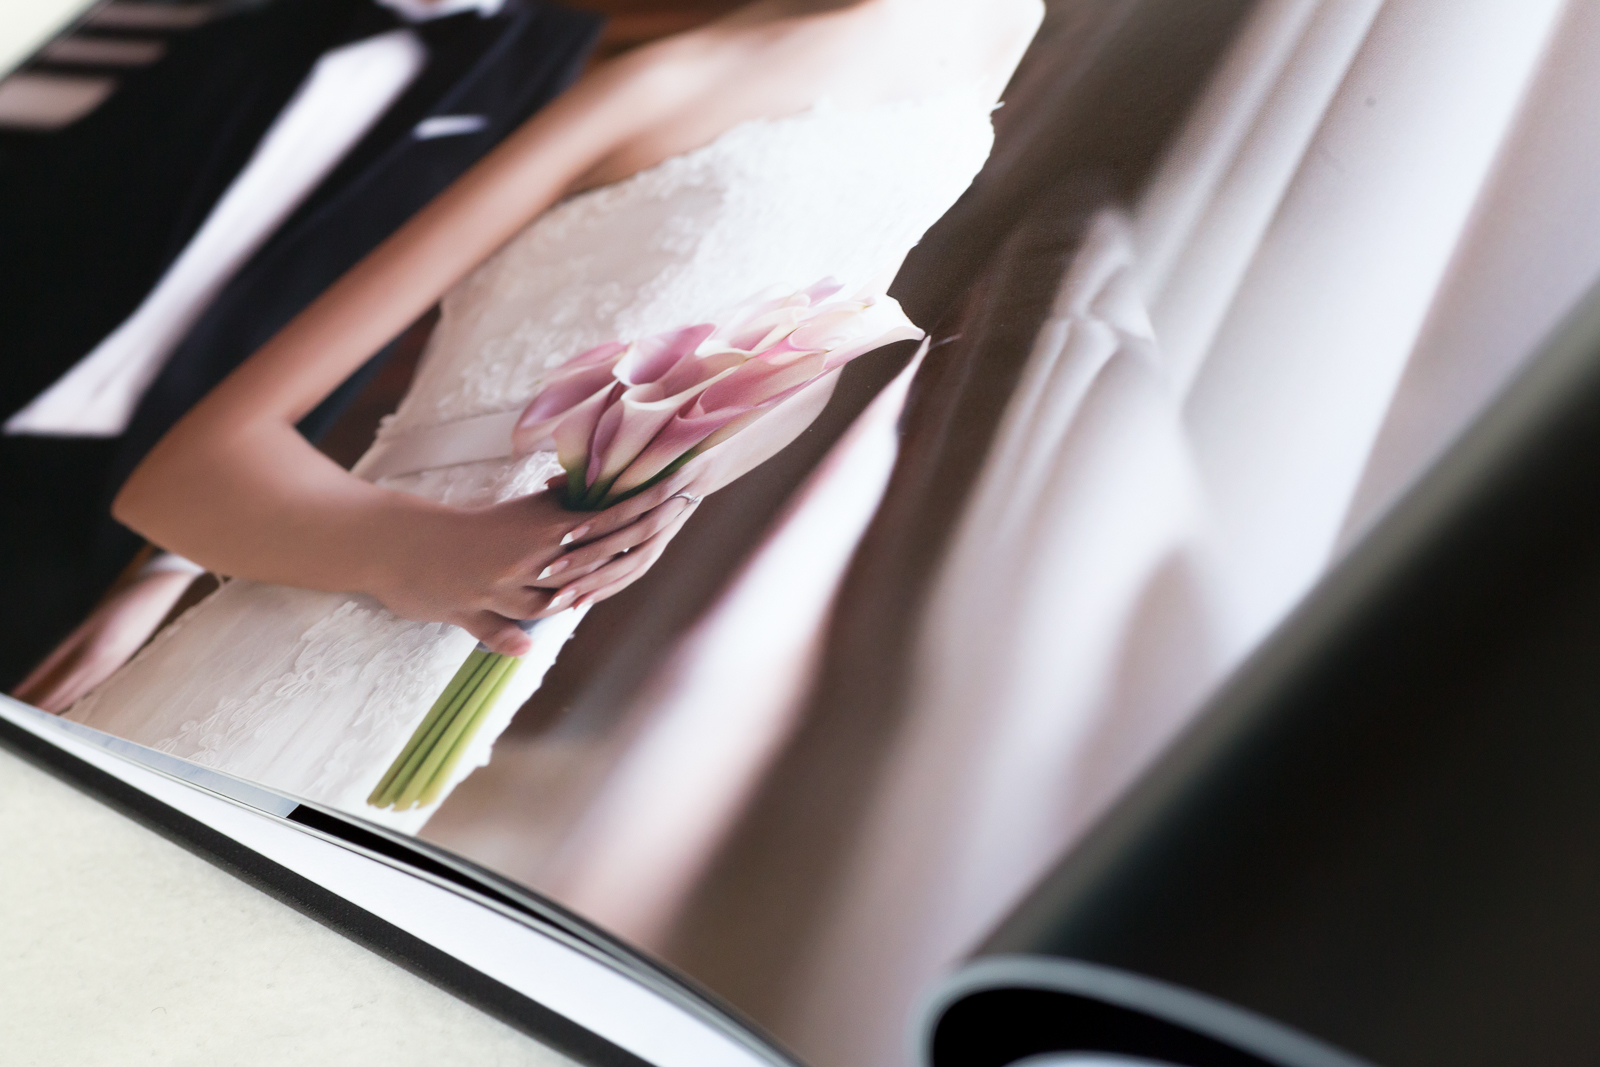 All pages are made by premium silk paper (matte)